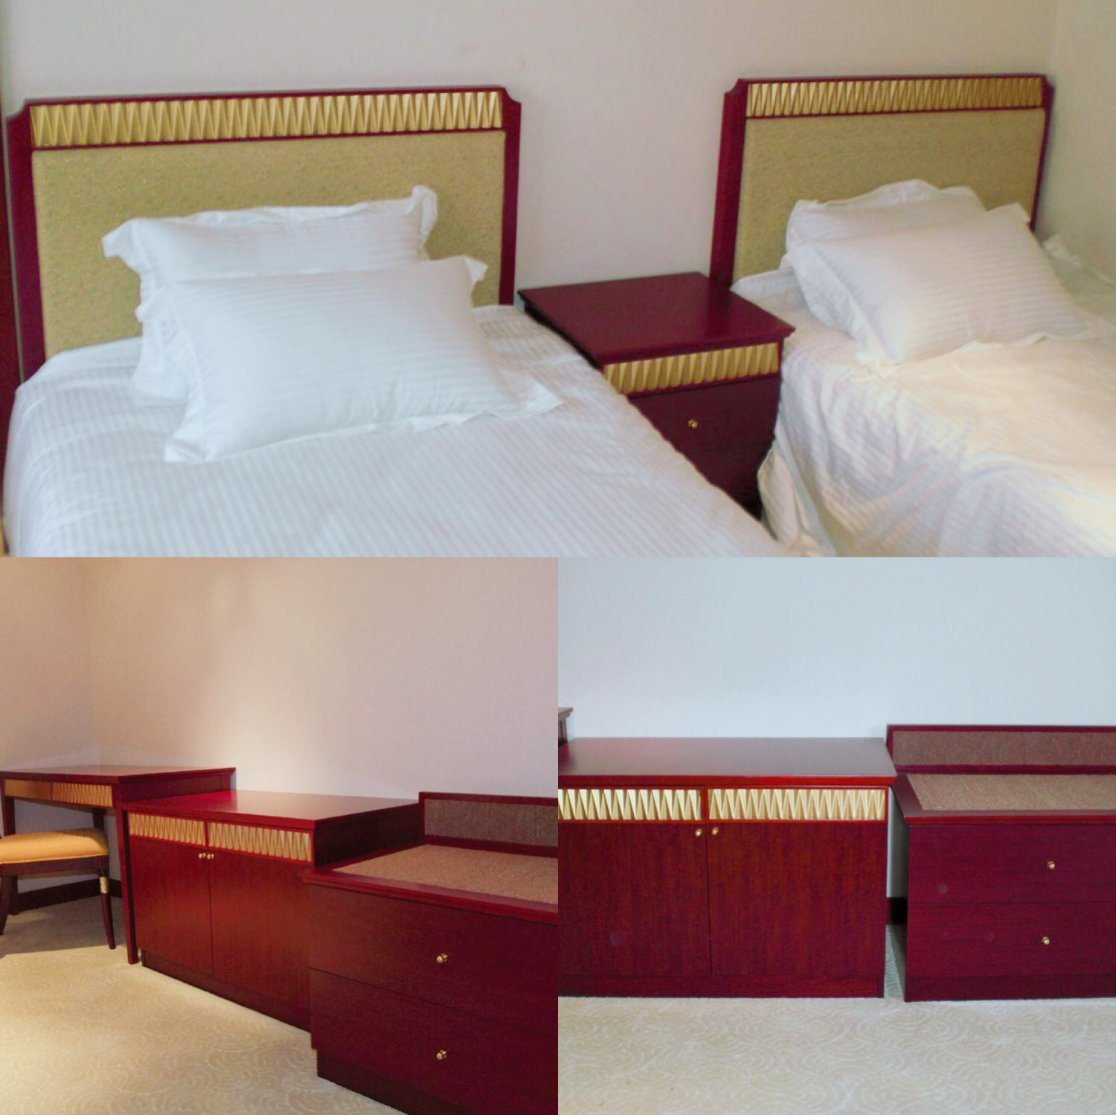 China Customized Modern Plywood Veneer Hotel Bedroom Furniture Set For Double Hospitality Guest Room Furniture Nchb 9101020511 China Customized Wood Hotel Furniture Double Hotel Bedroom Furniture